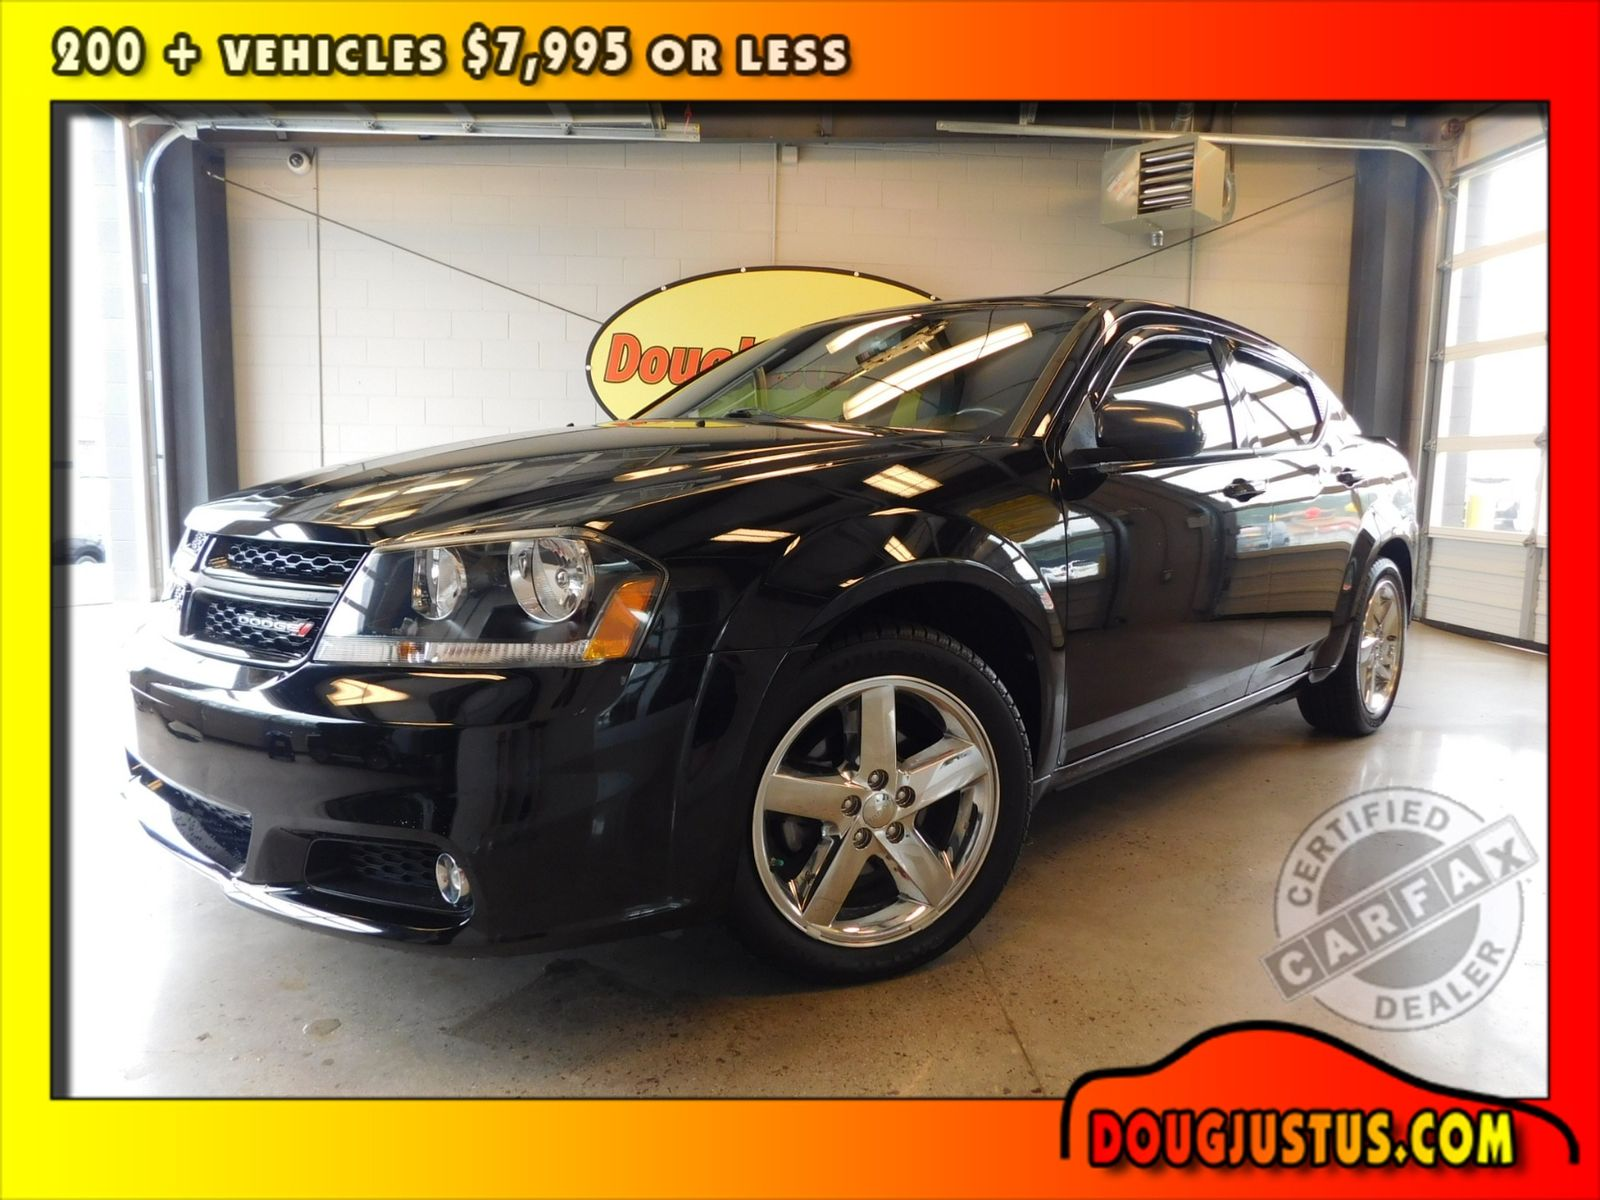 Dodge Avenger: Vehicle security alarm — if equipped